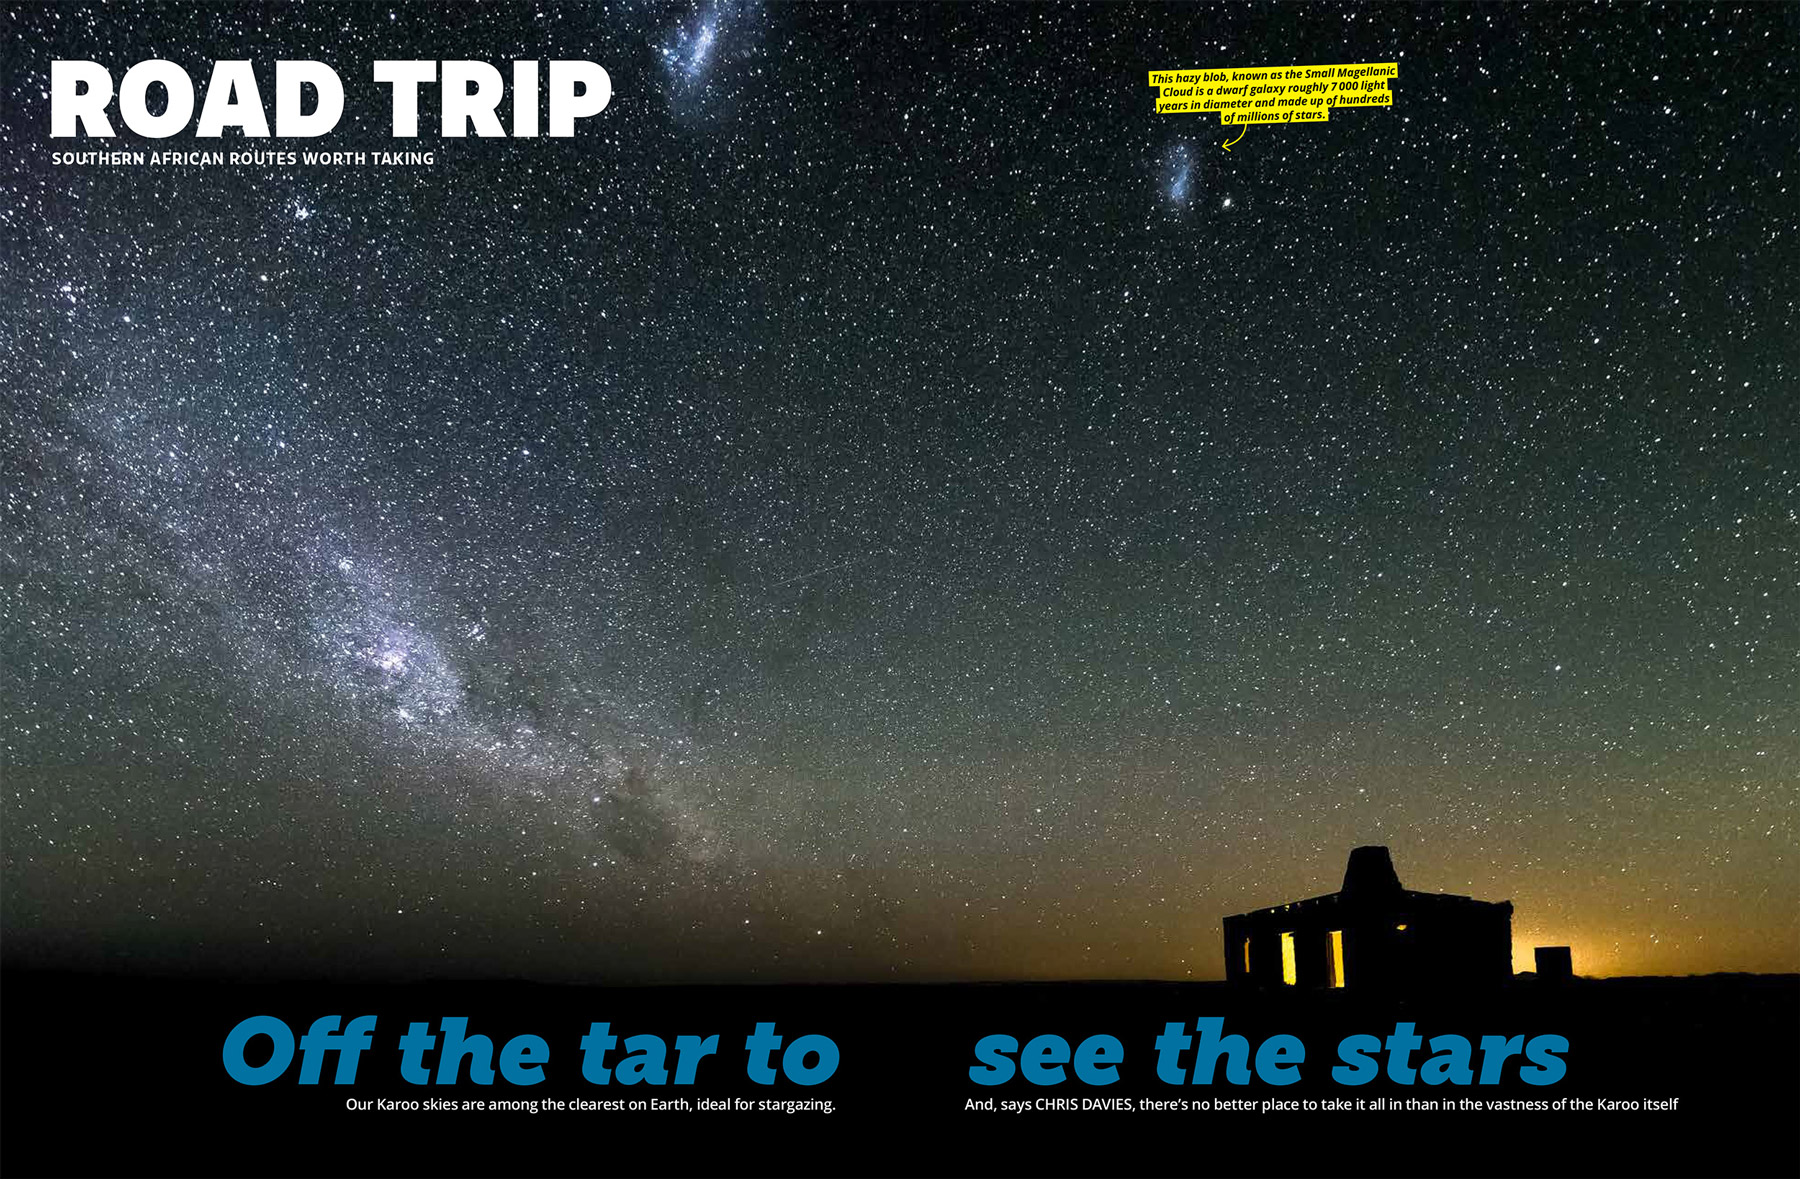 Getaway Magazine - South Africa's Karoo desert is spectacularly barren by day, and even more spectacular by night.